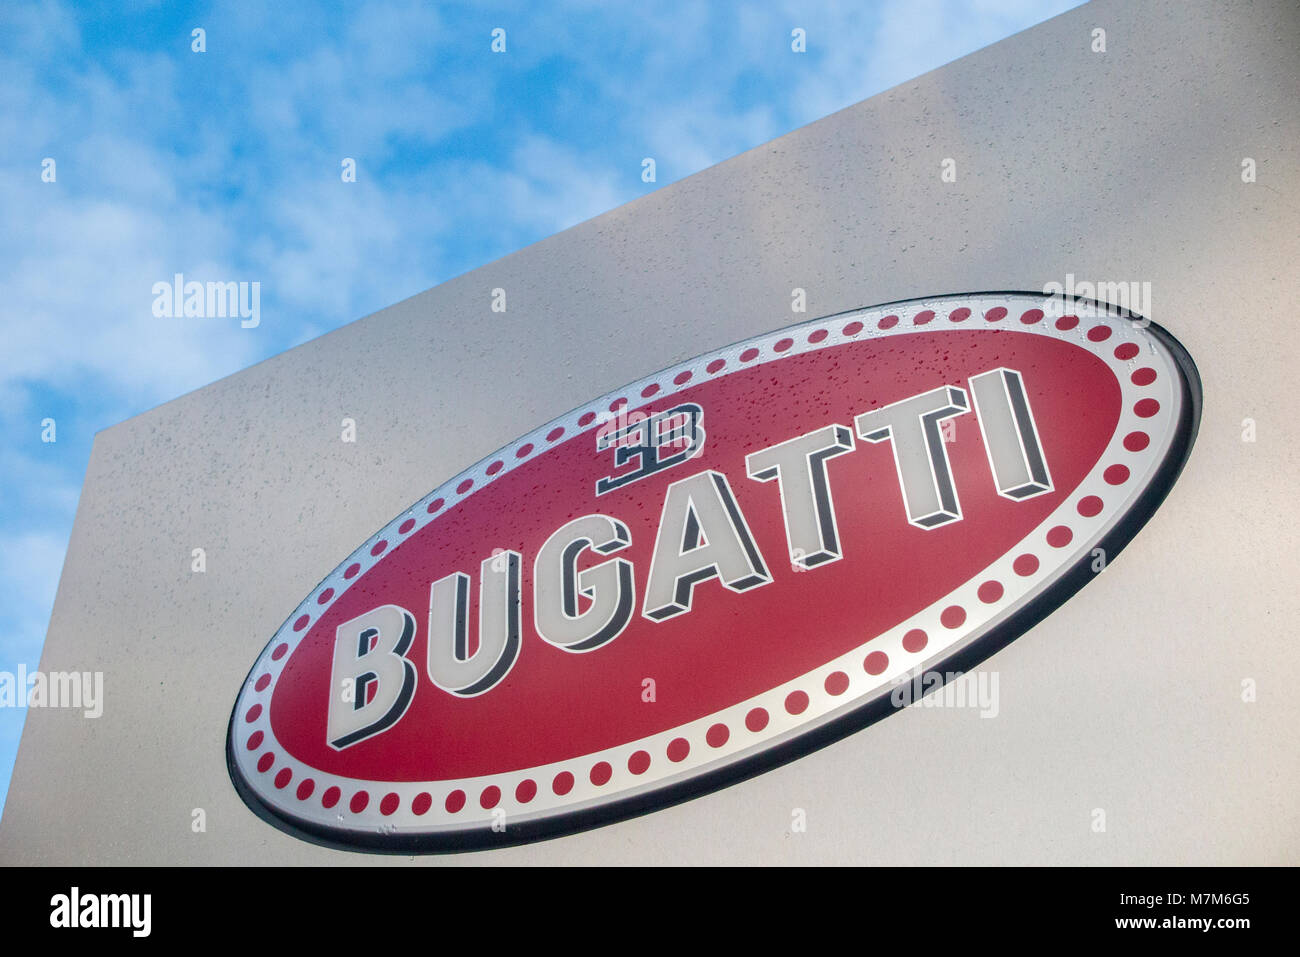 The Bugatti sign outside a showroom in central London - Stock Image